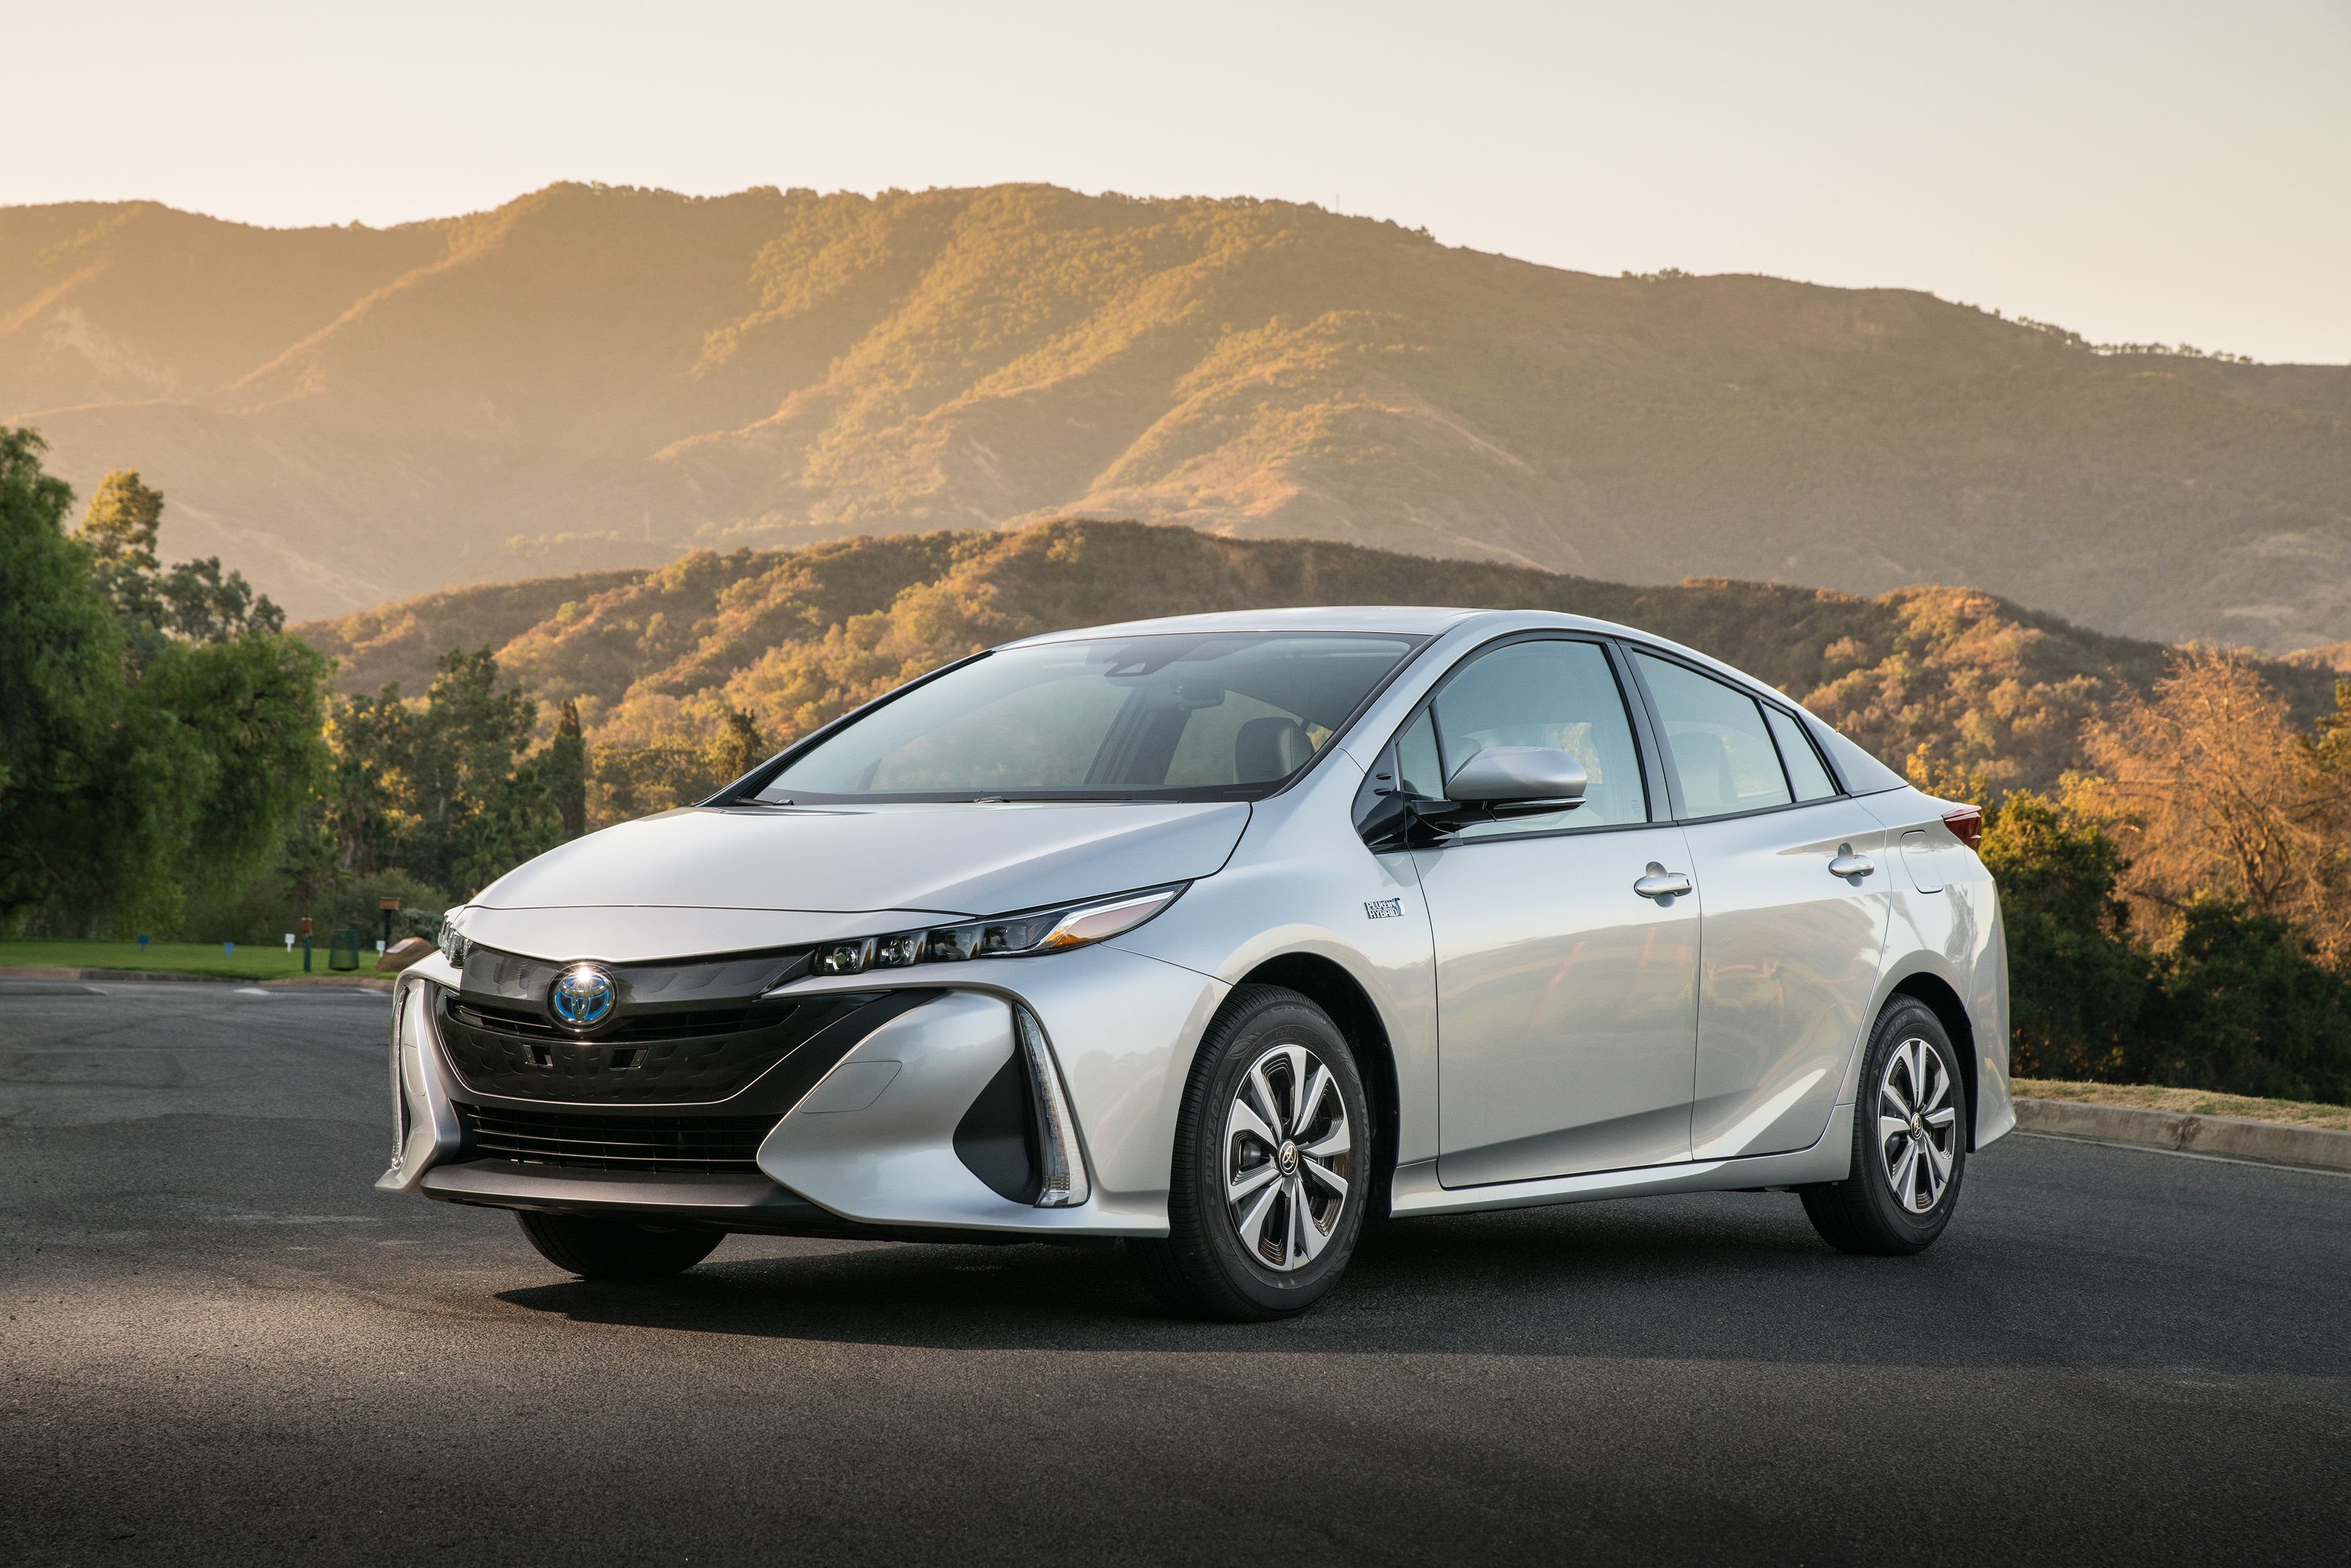 Toyota Claims To Have Tamed Lithium Ion Battery Technology